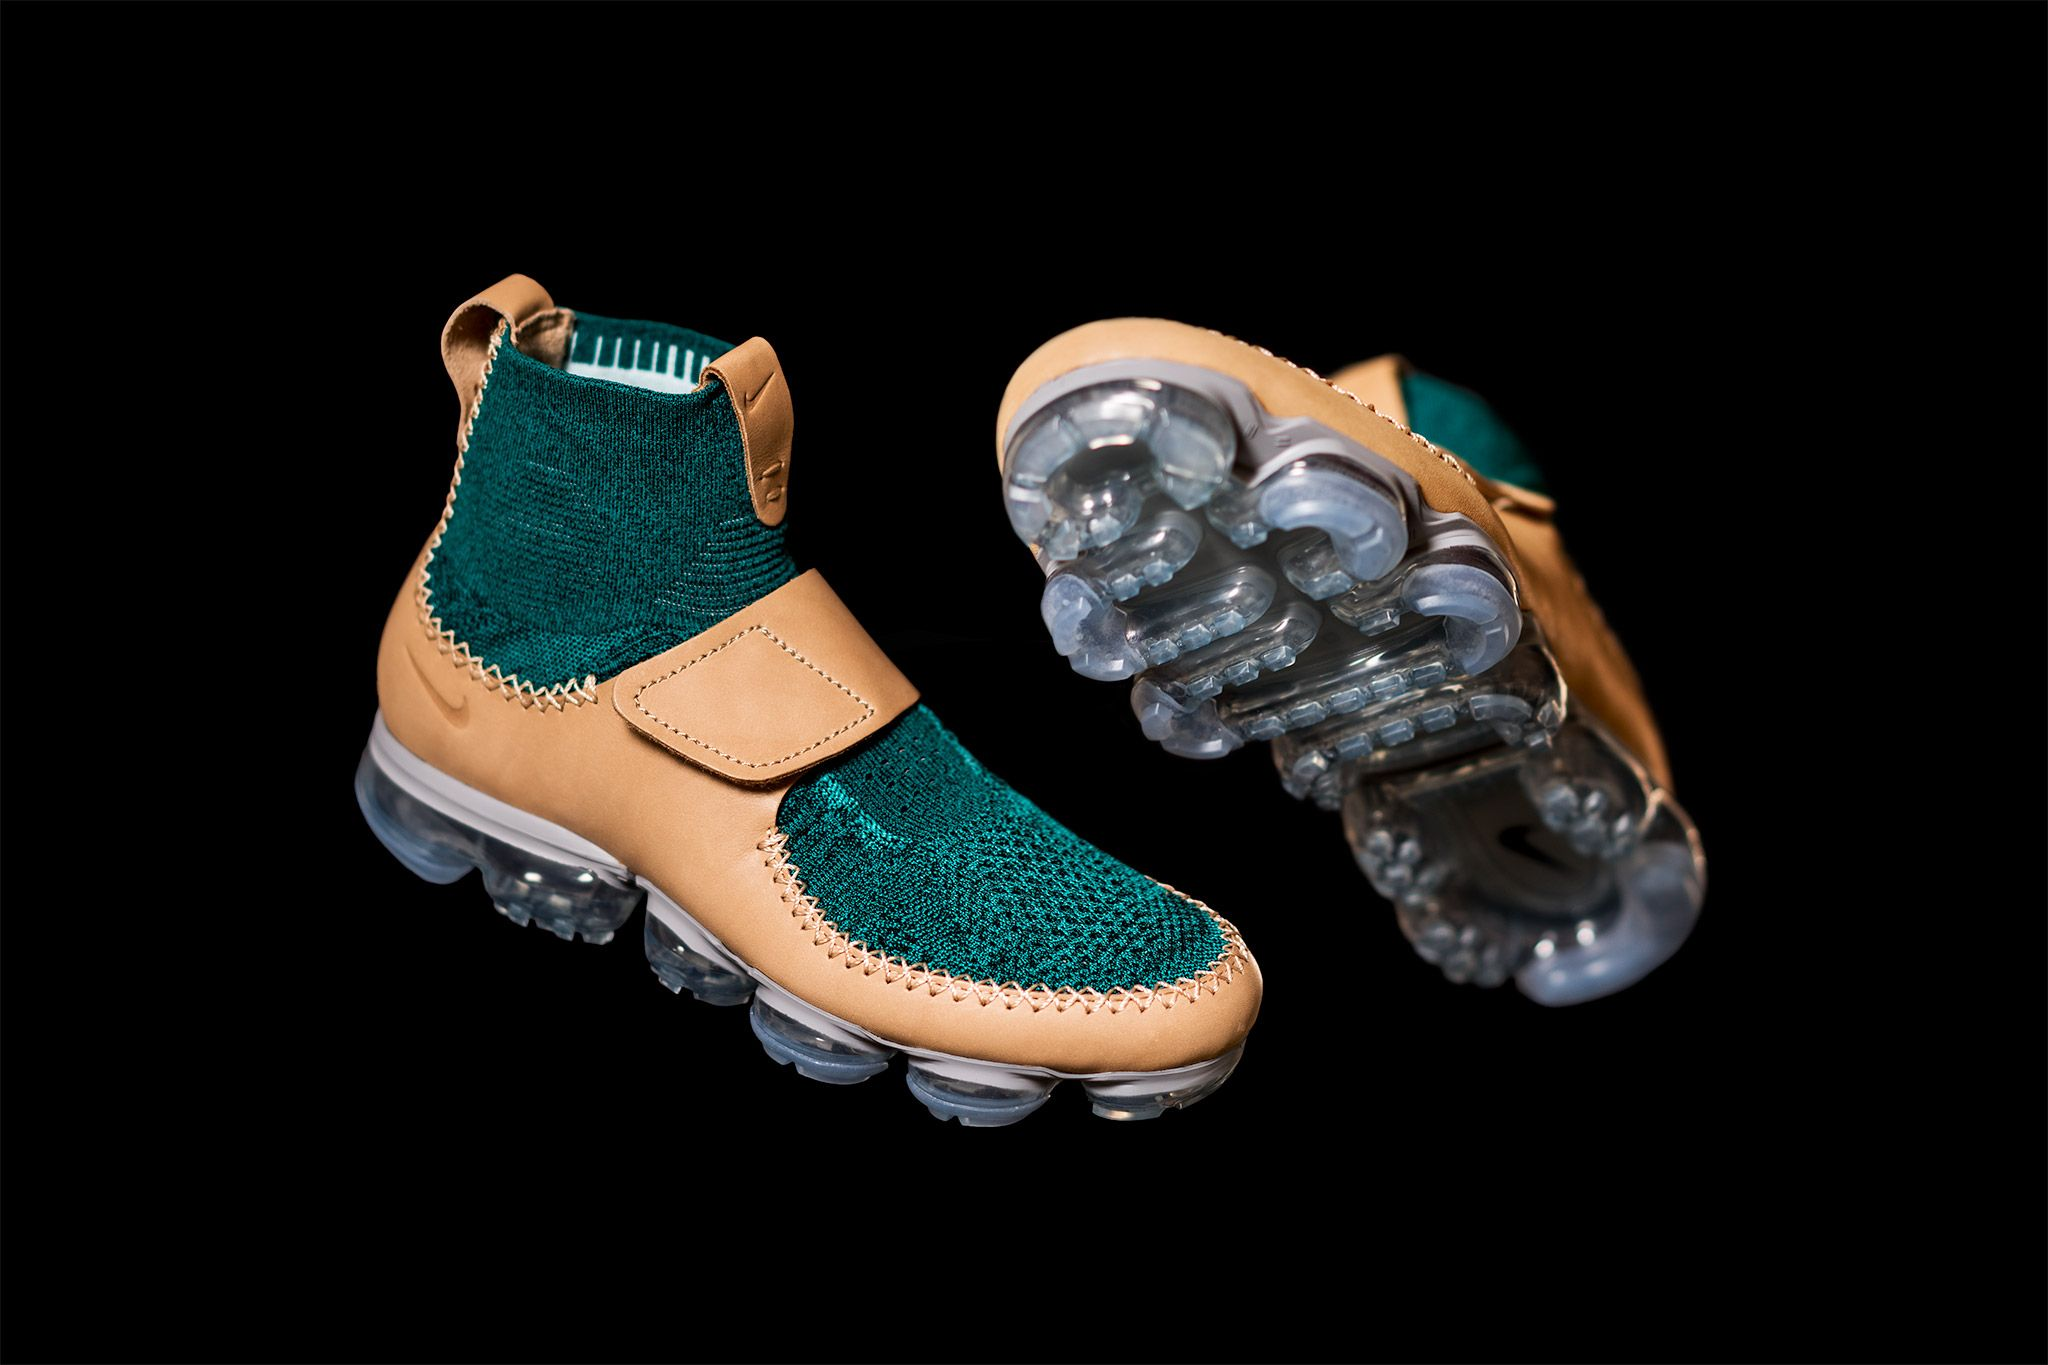 5001fb8866616 NikeLab x Marc Newson Air VaporMax | NikeLab realigns with celebrated  industrial designer – Marc Newson for a bold iteration of the progressive  VaporMax ...